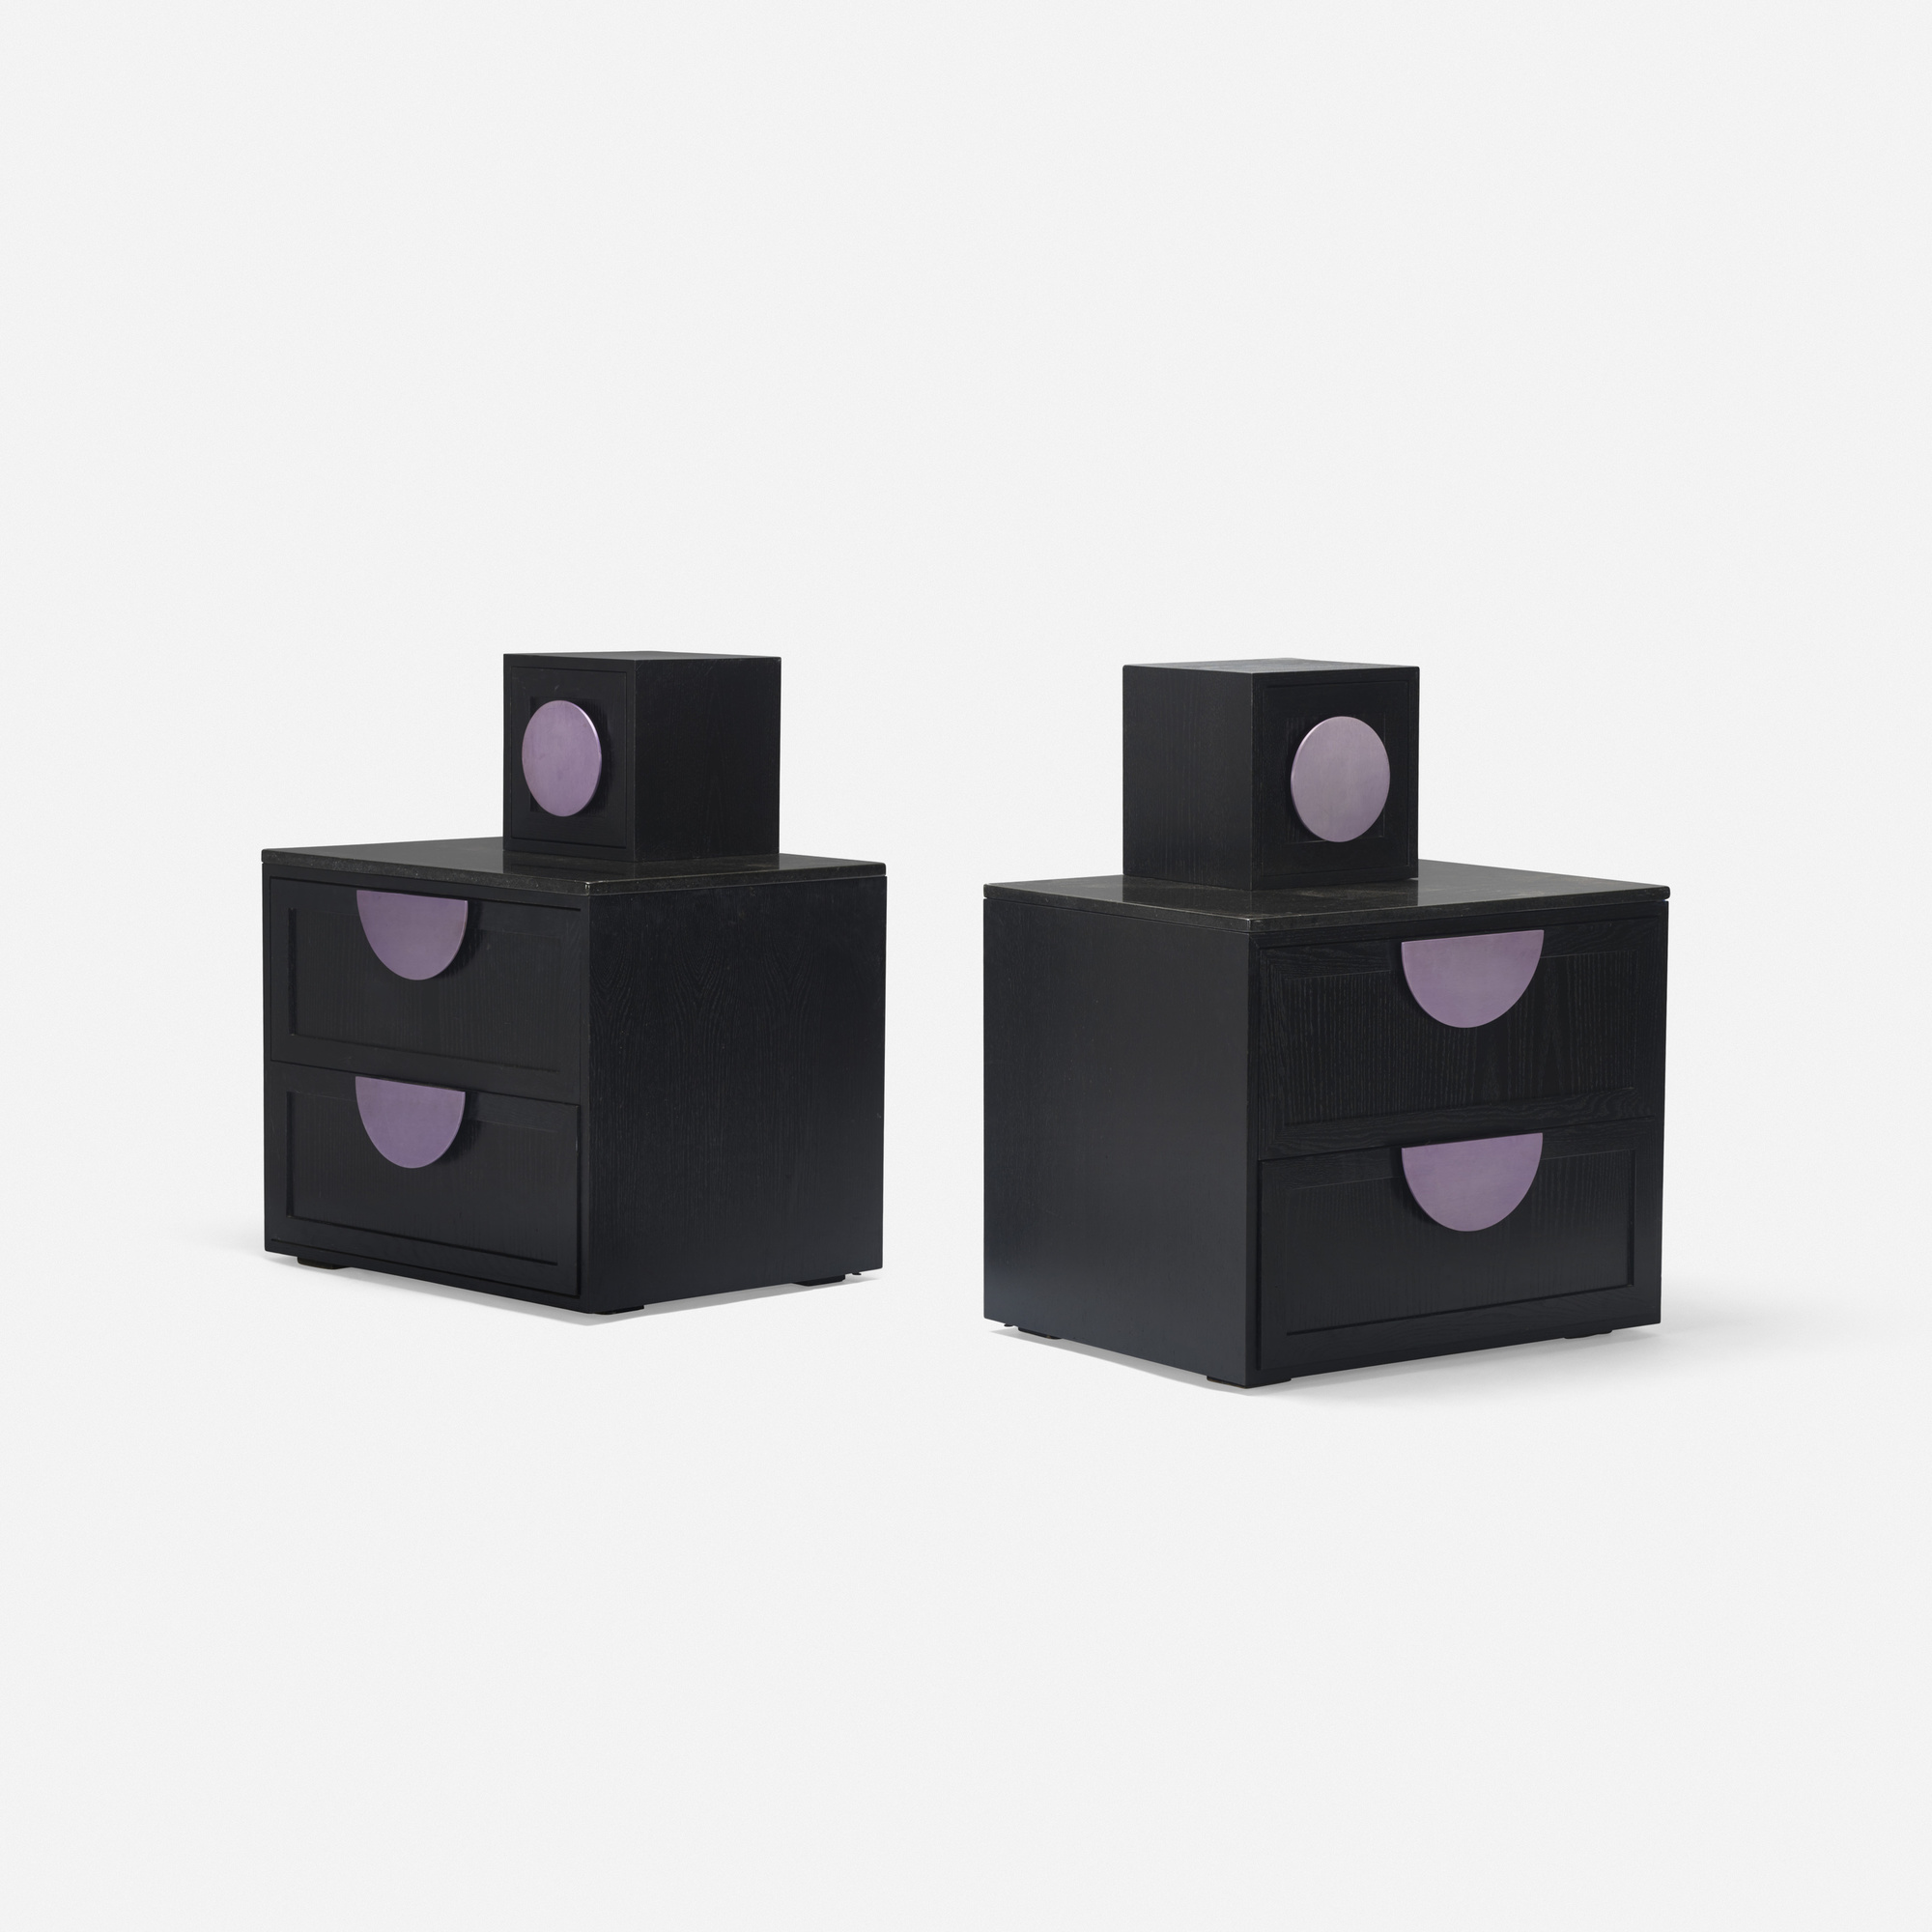 425: Peter Shire / custom nightstands, pair (1 of 2)